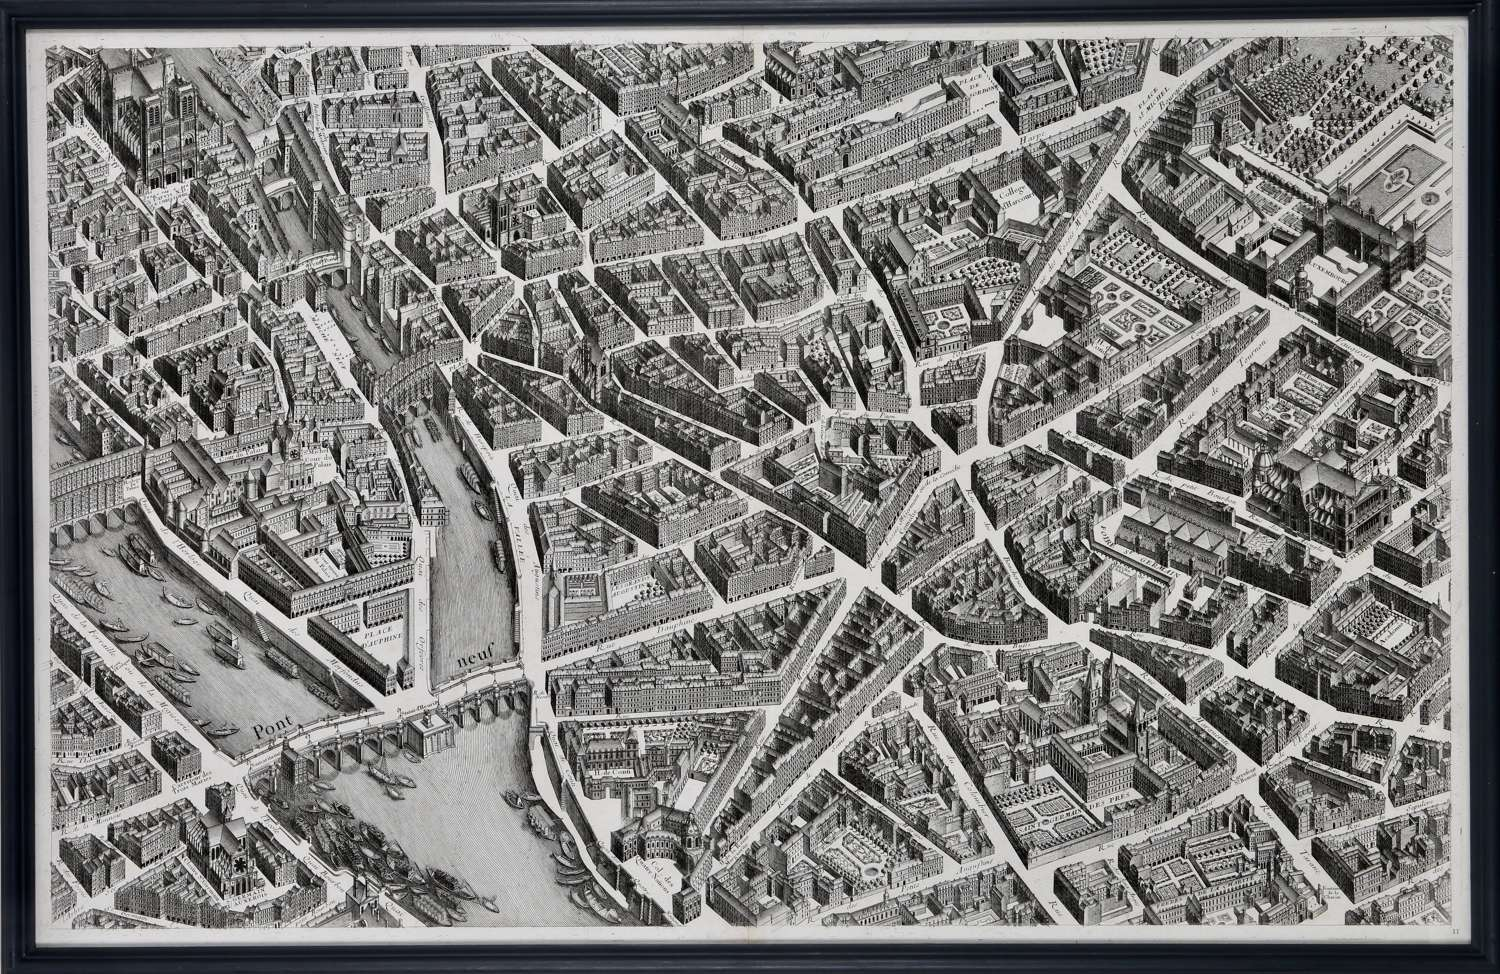 The set of 20 plates forming a complete map of Paris, framed.